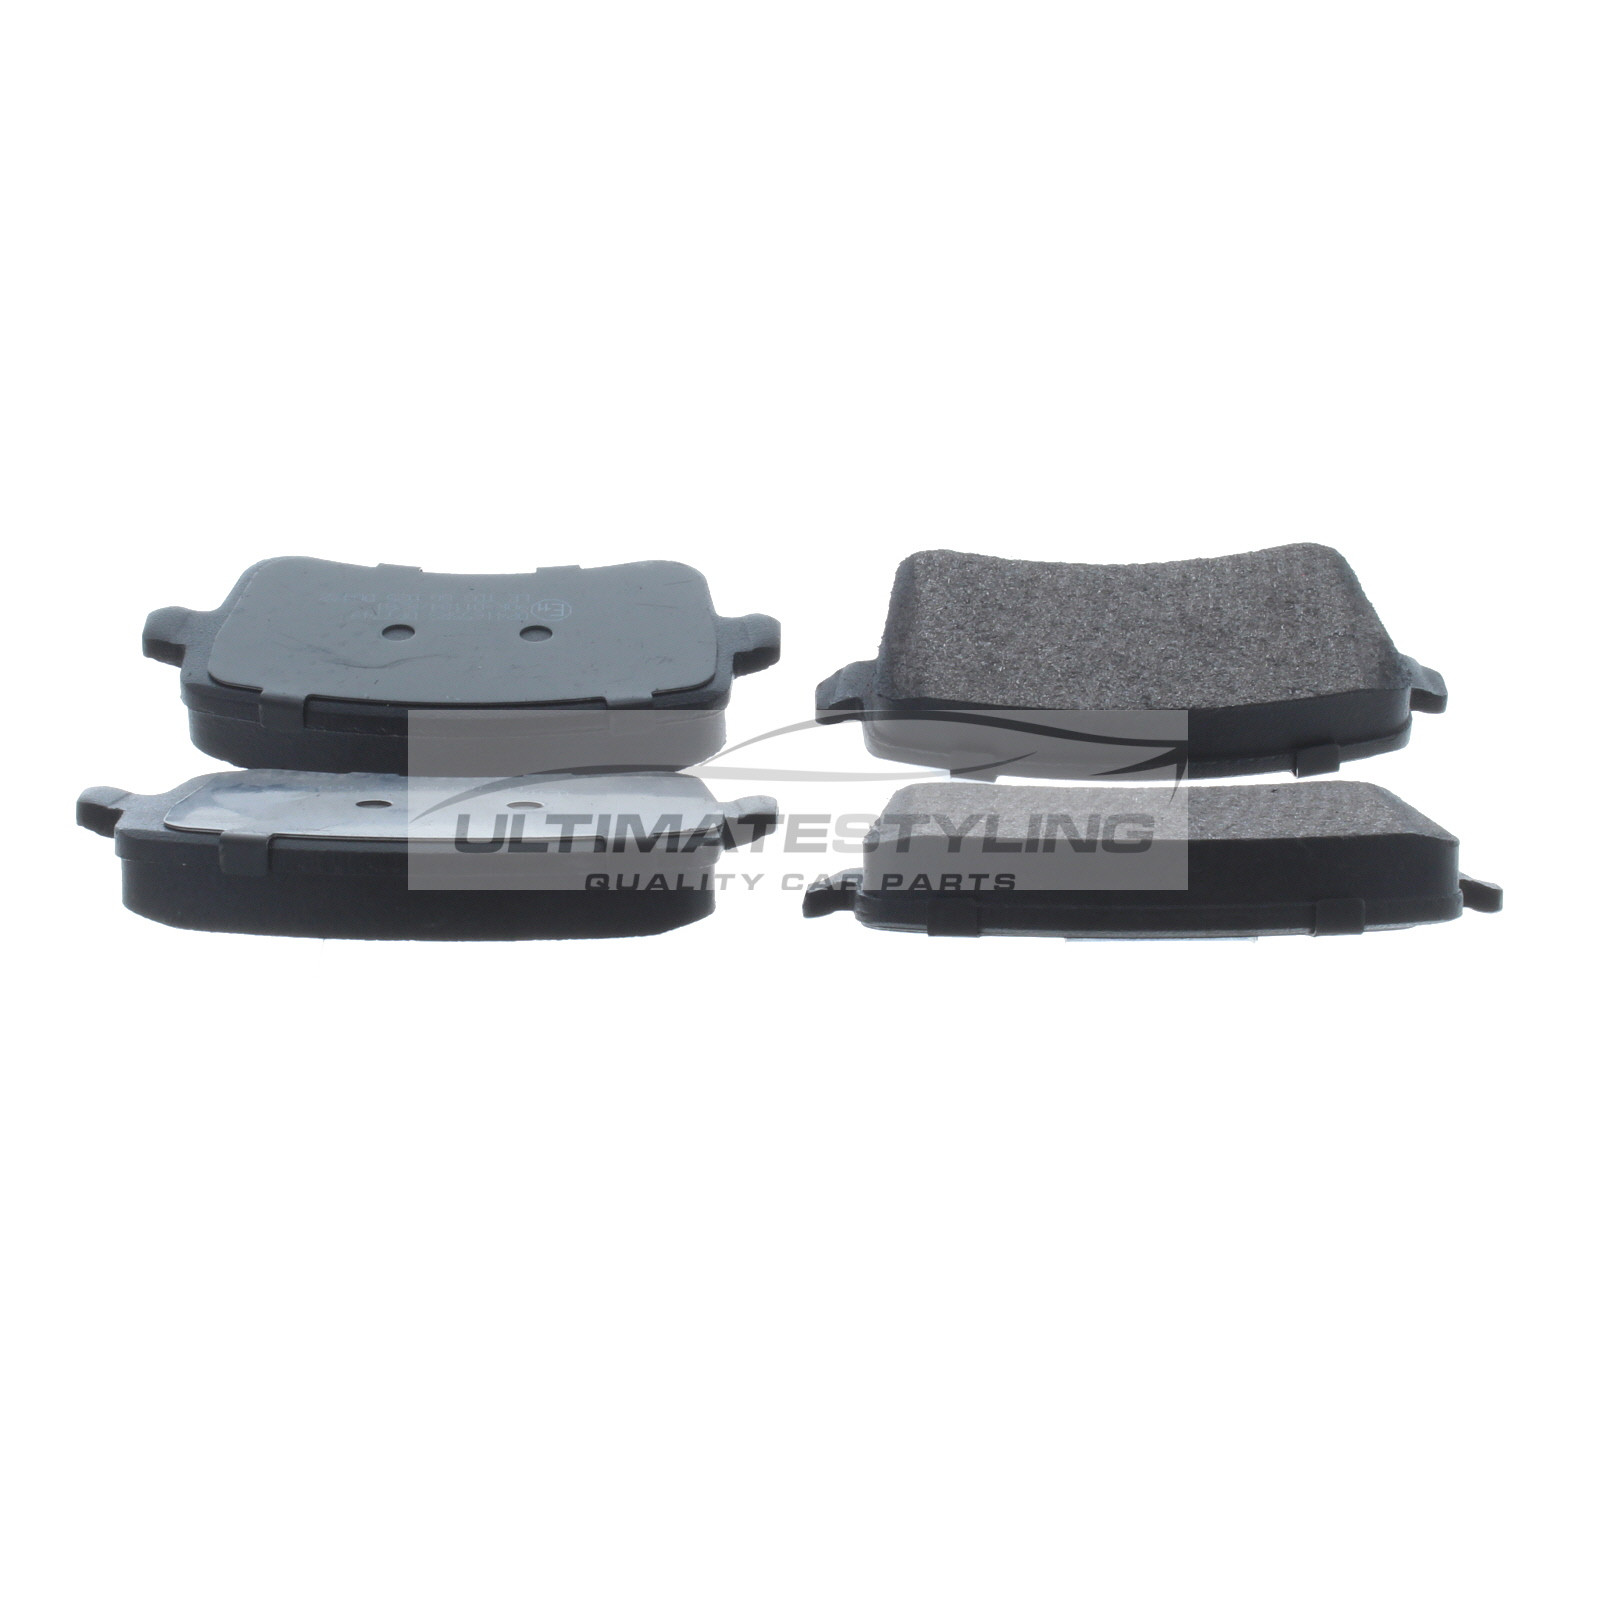 Audi A4 / A5 / Q5 / RS4 / RS5 / S3 / S4 / S5 / SQ5 Brake Pads - Rear